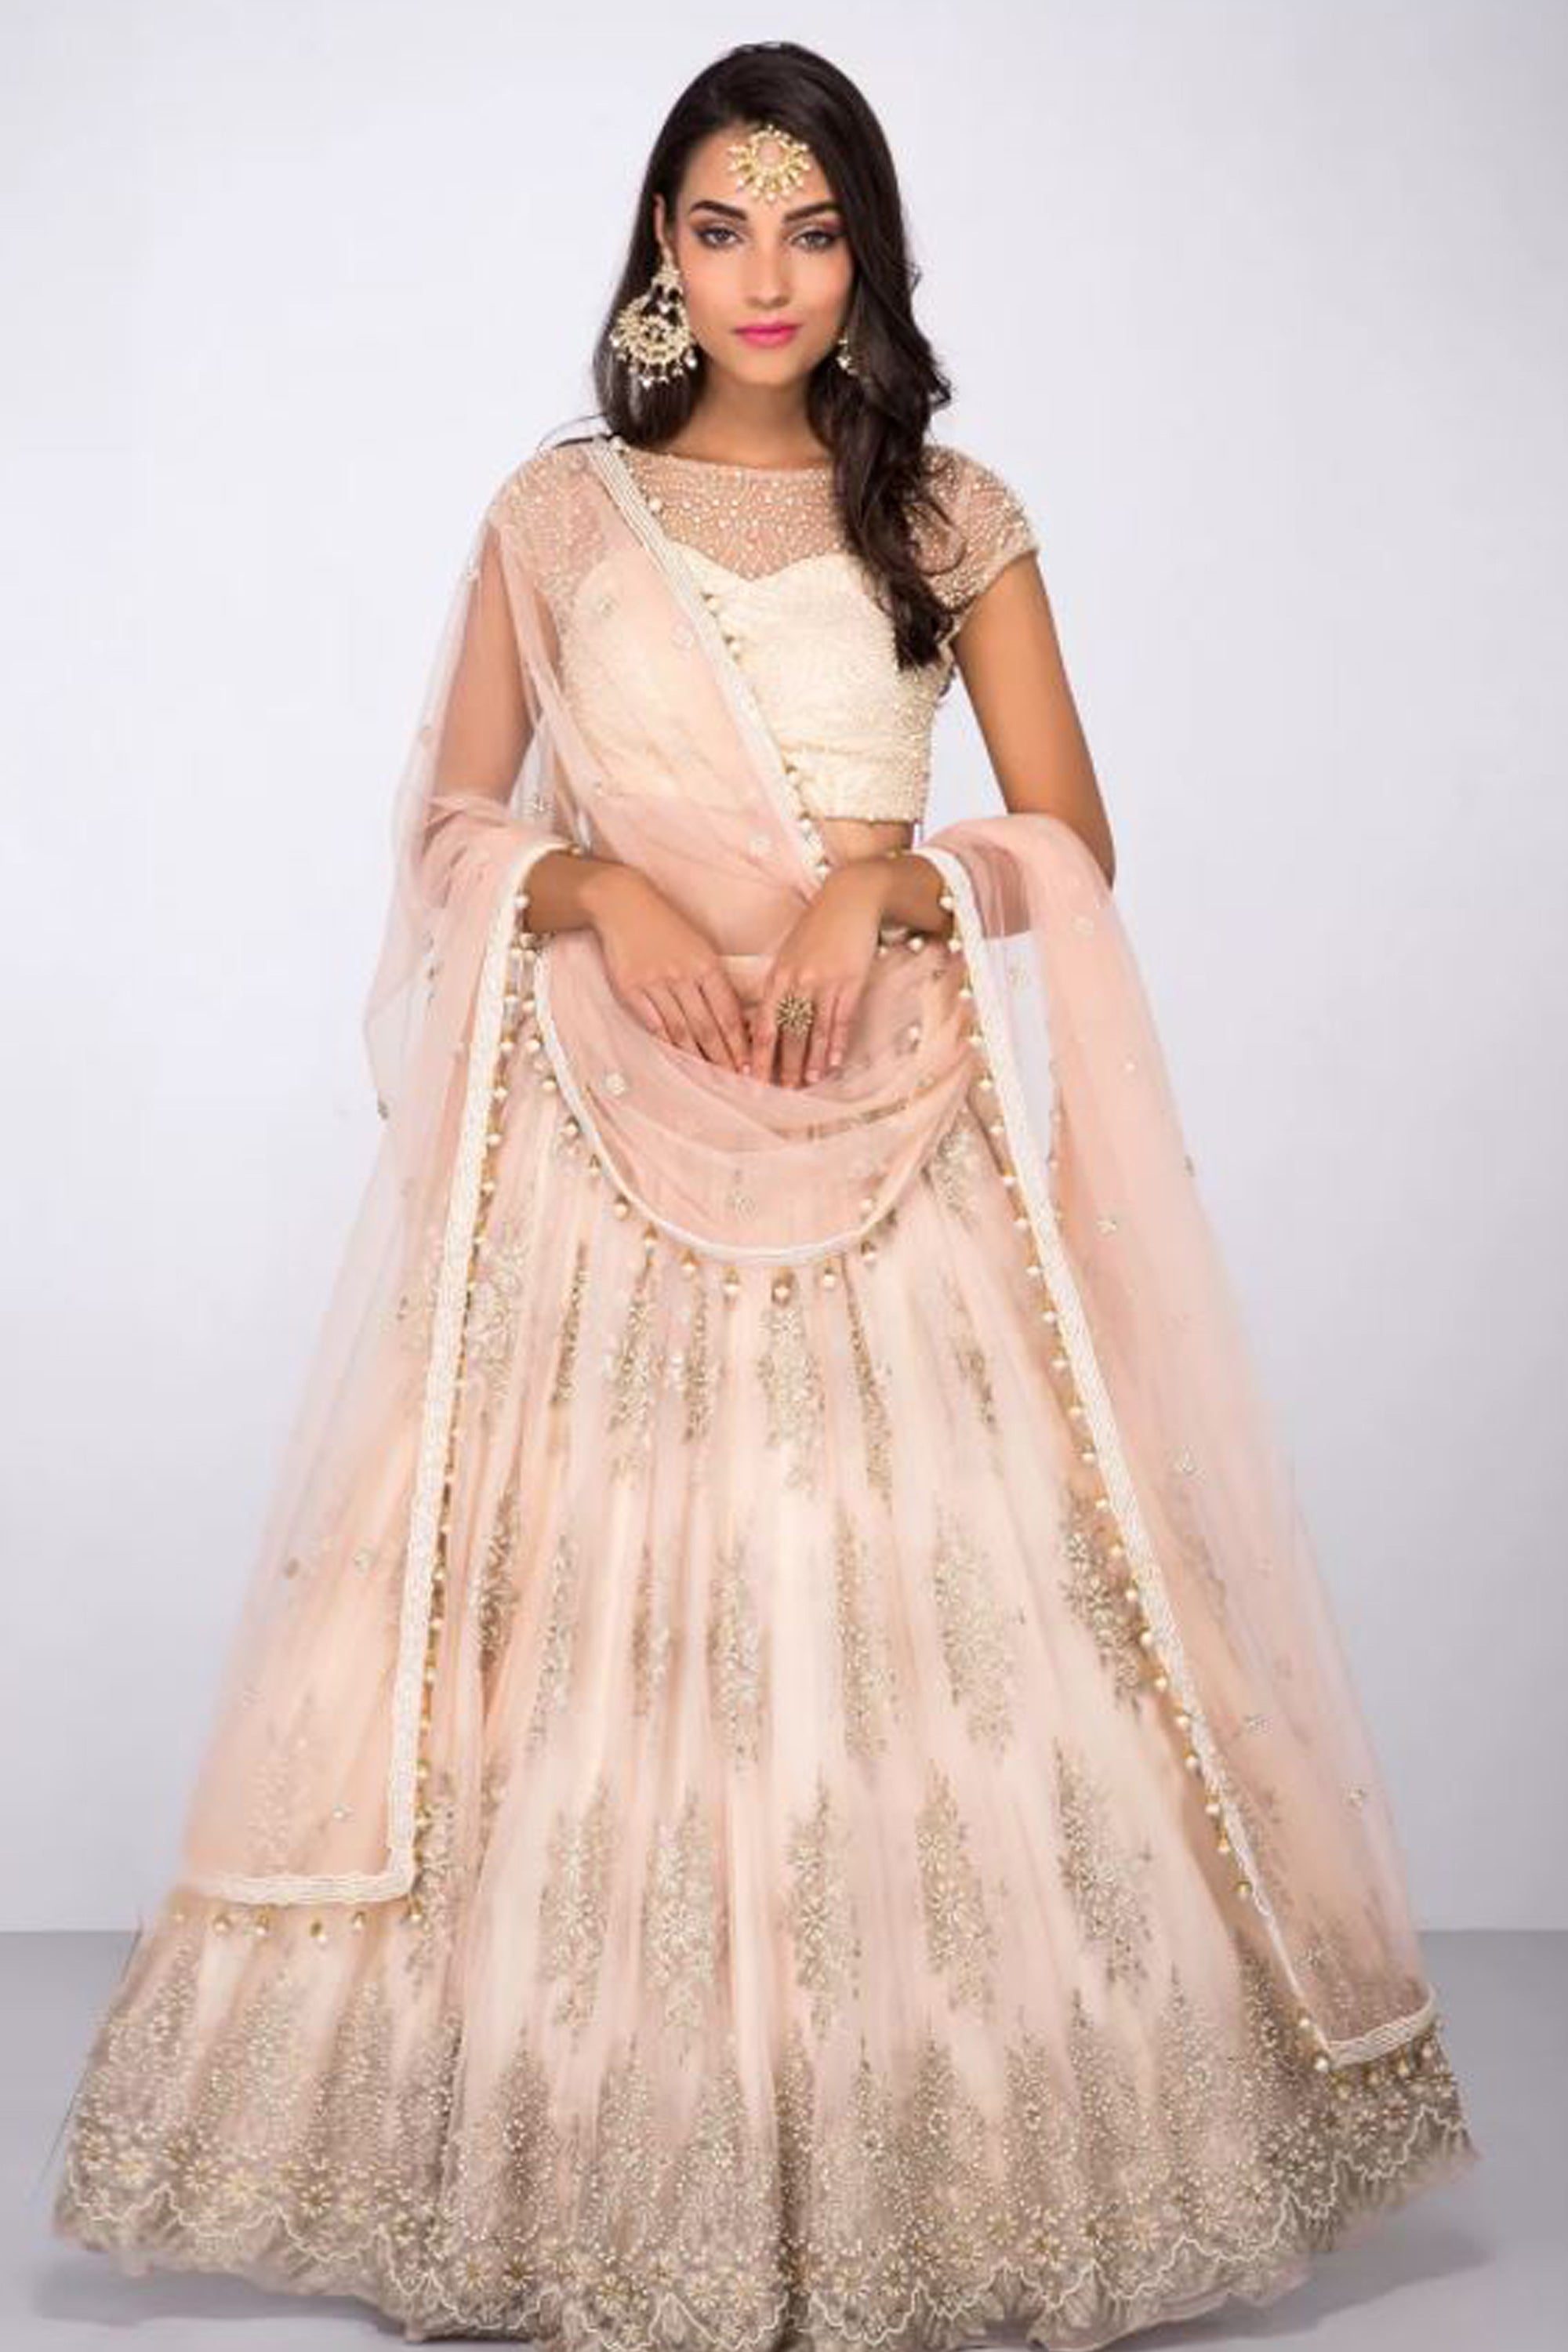 Rose Pink Lehenga With Pearl Work & Embroidery Front